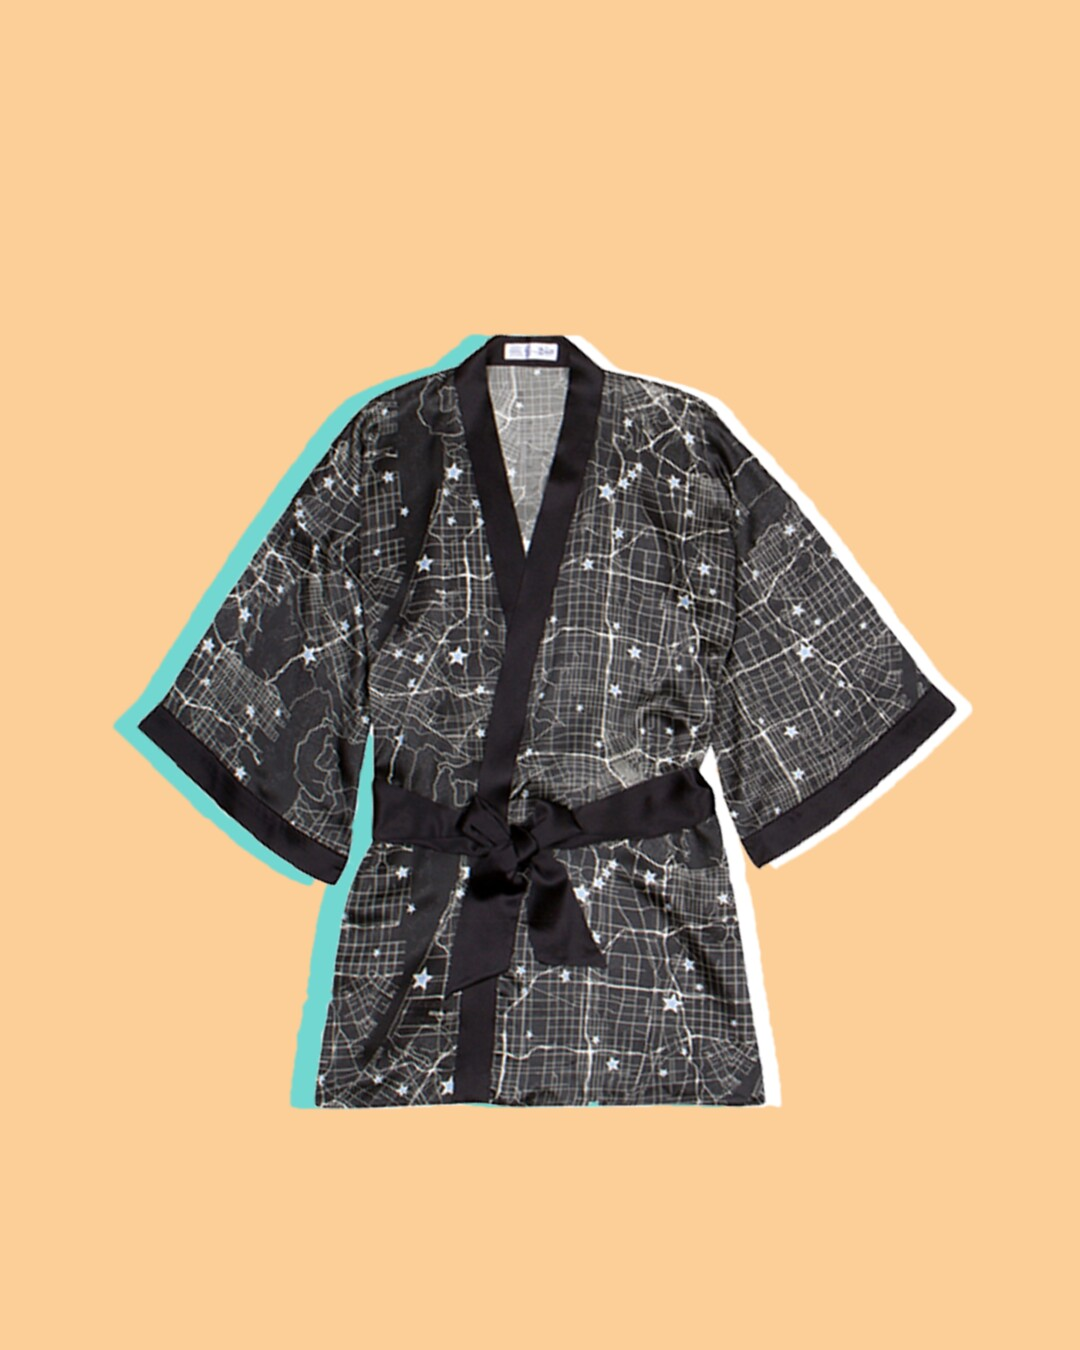 Black and white star map robe from Fred Segal